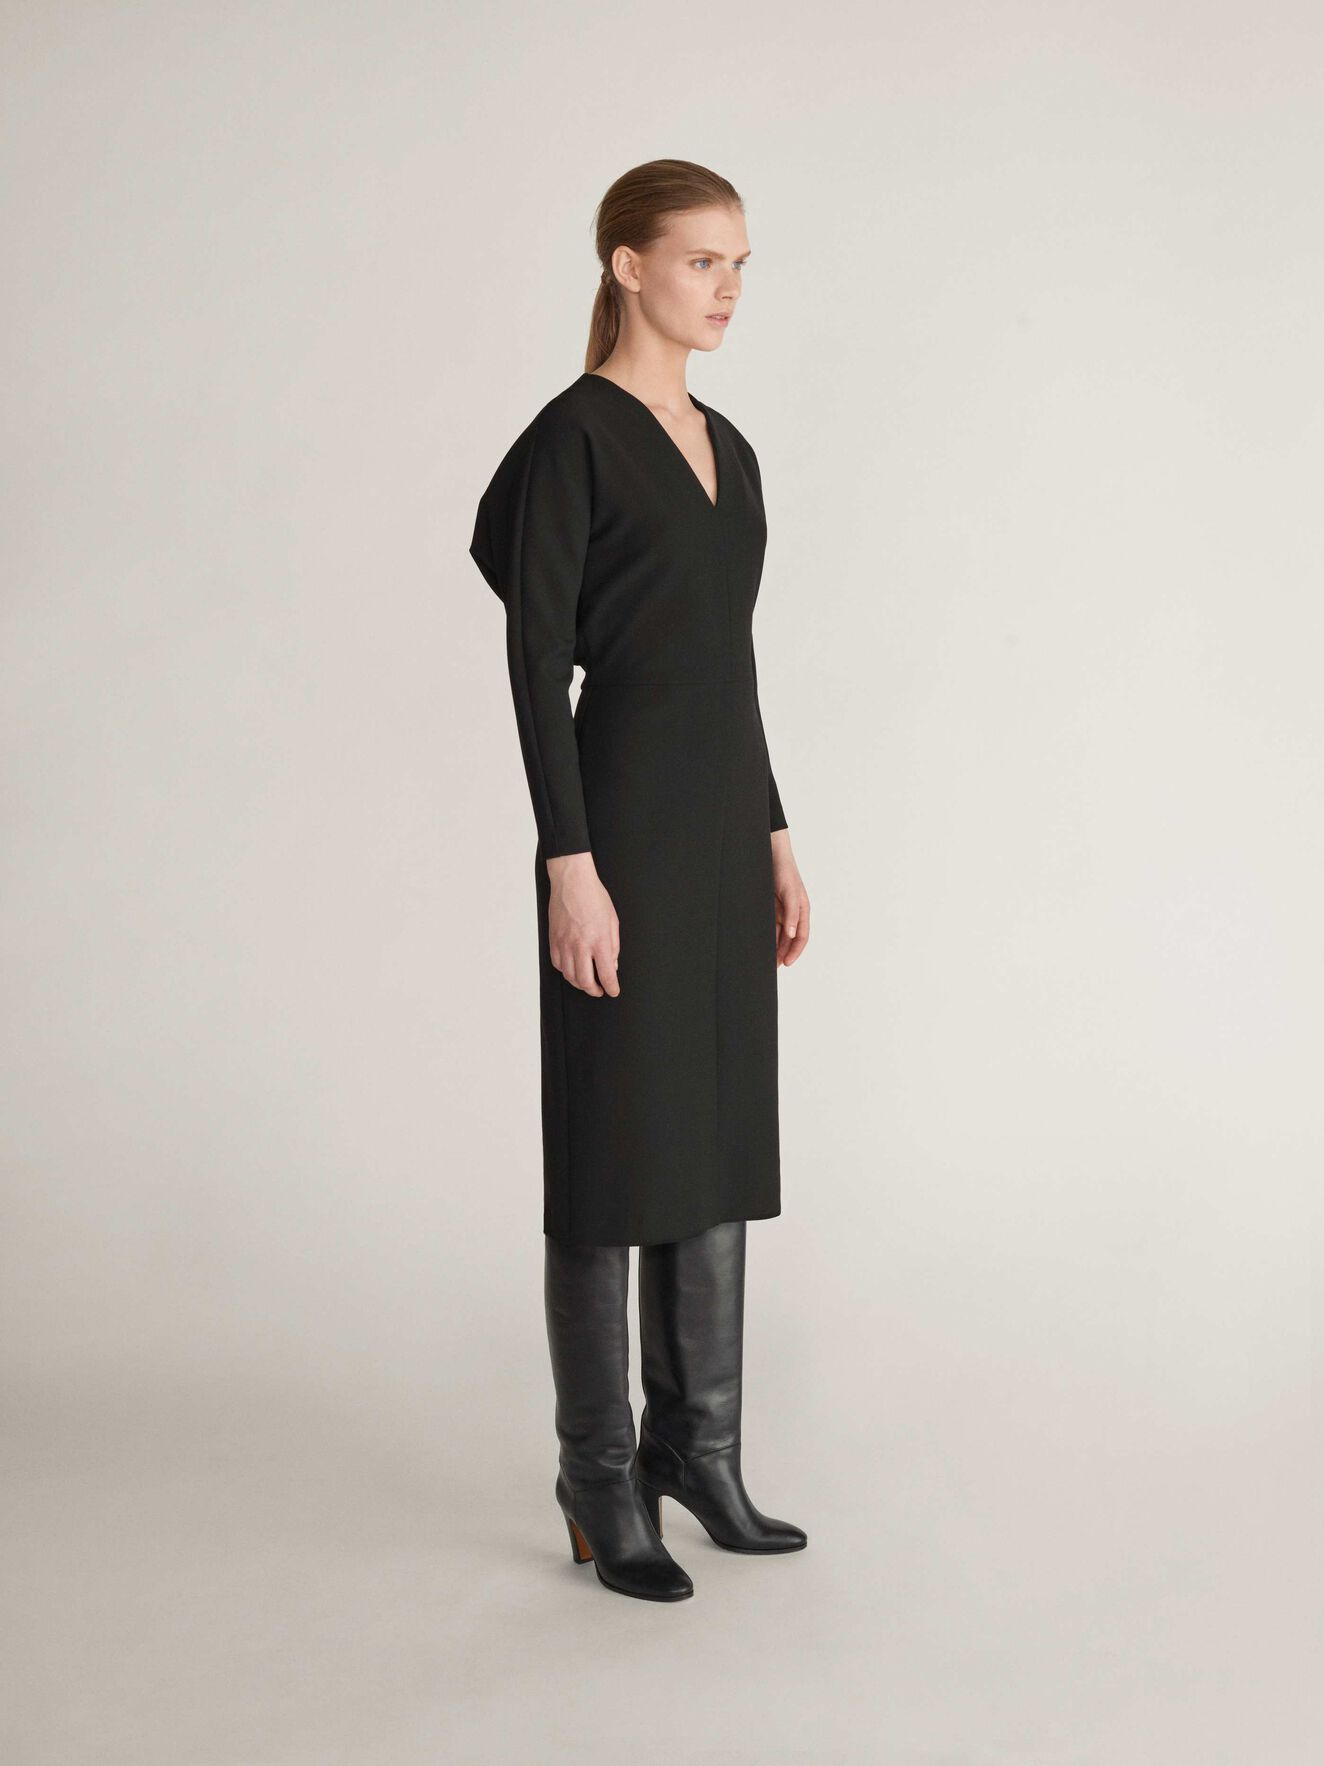 Assulu Dress in Midnight Black from Tiger of Sweden